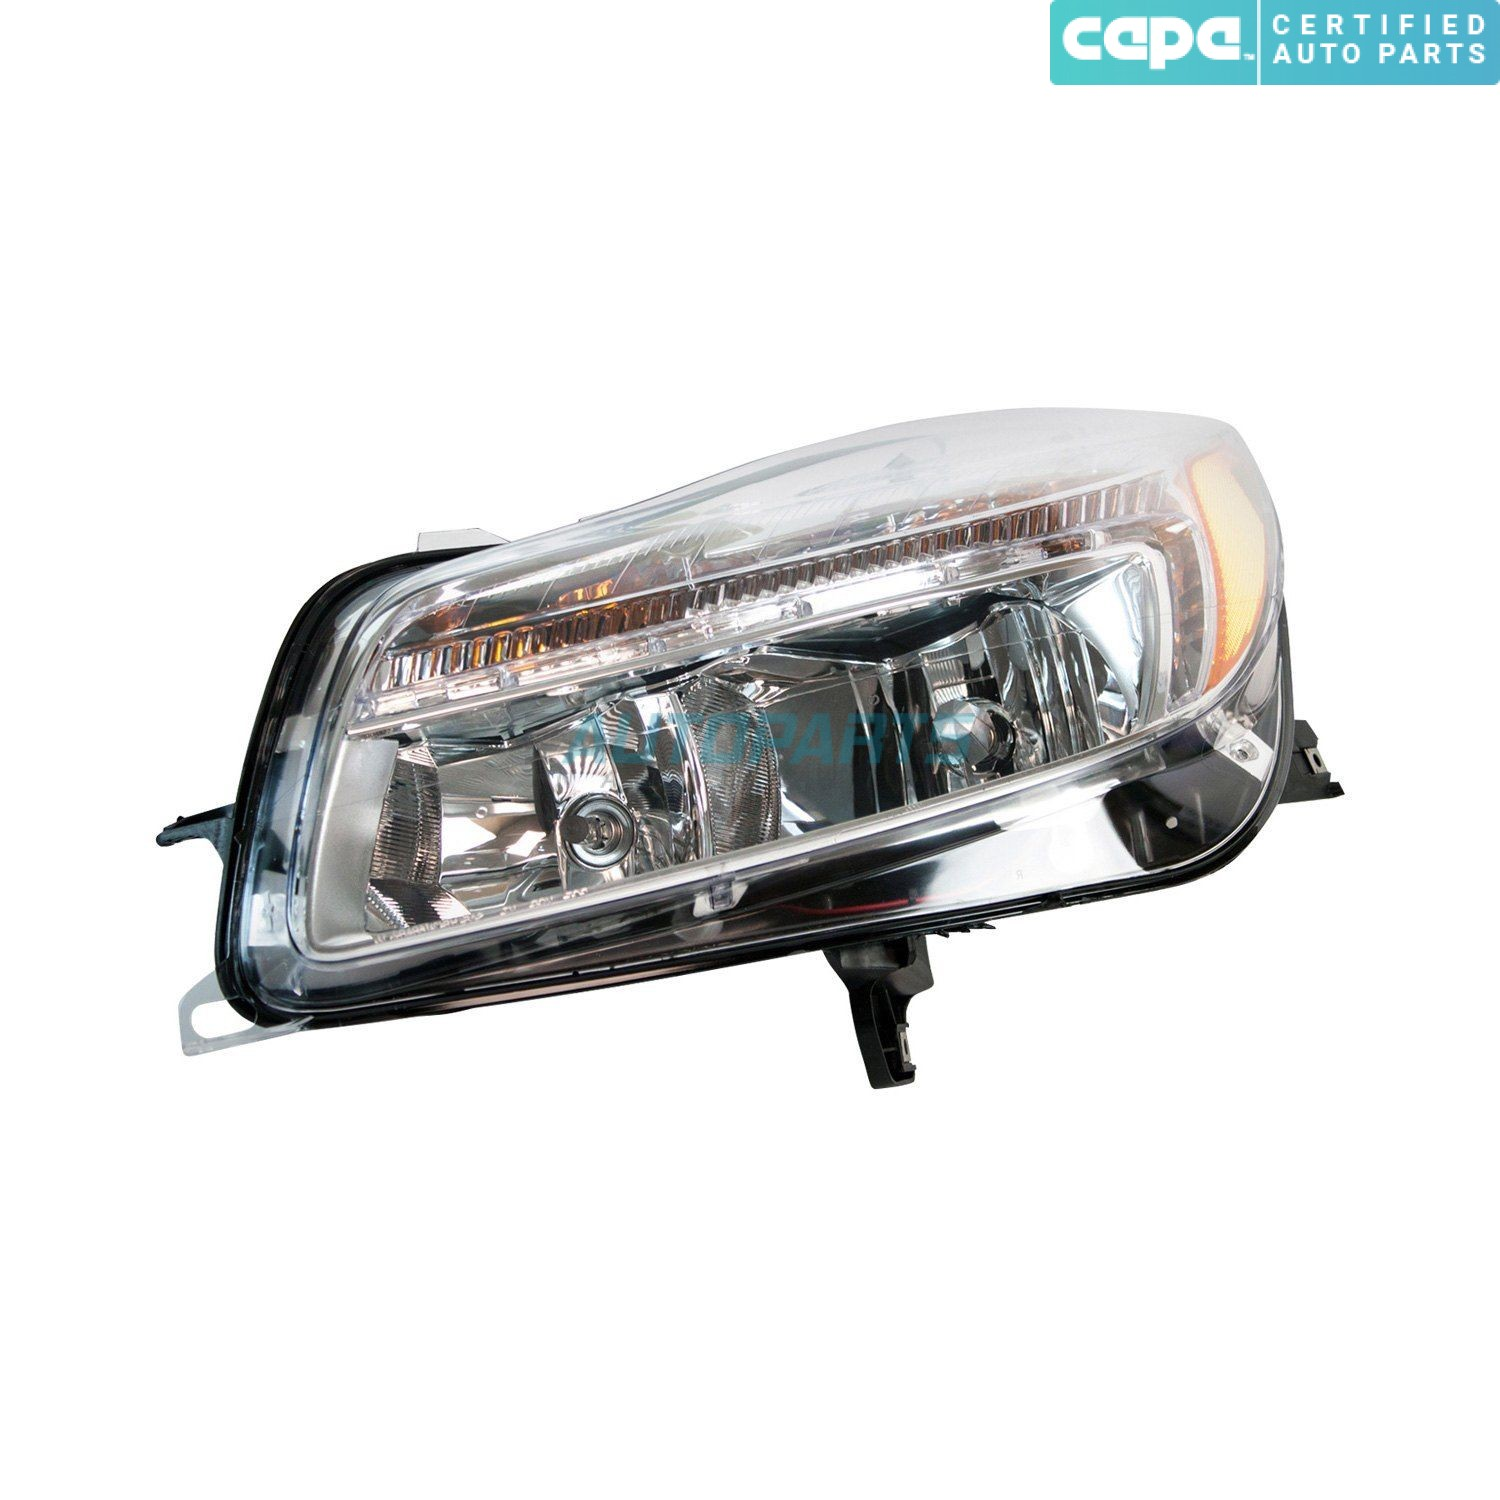 2013 Buick Regal Suspension: NEW LEFT HALOGEN HEADLIGHT ASSEMBLY FITS 2011-2013 BUICK